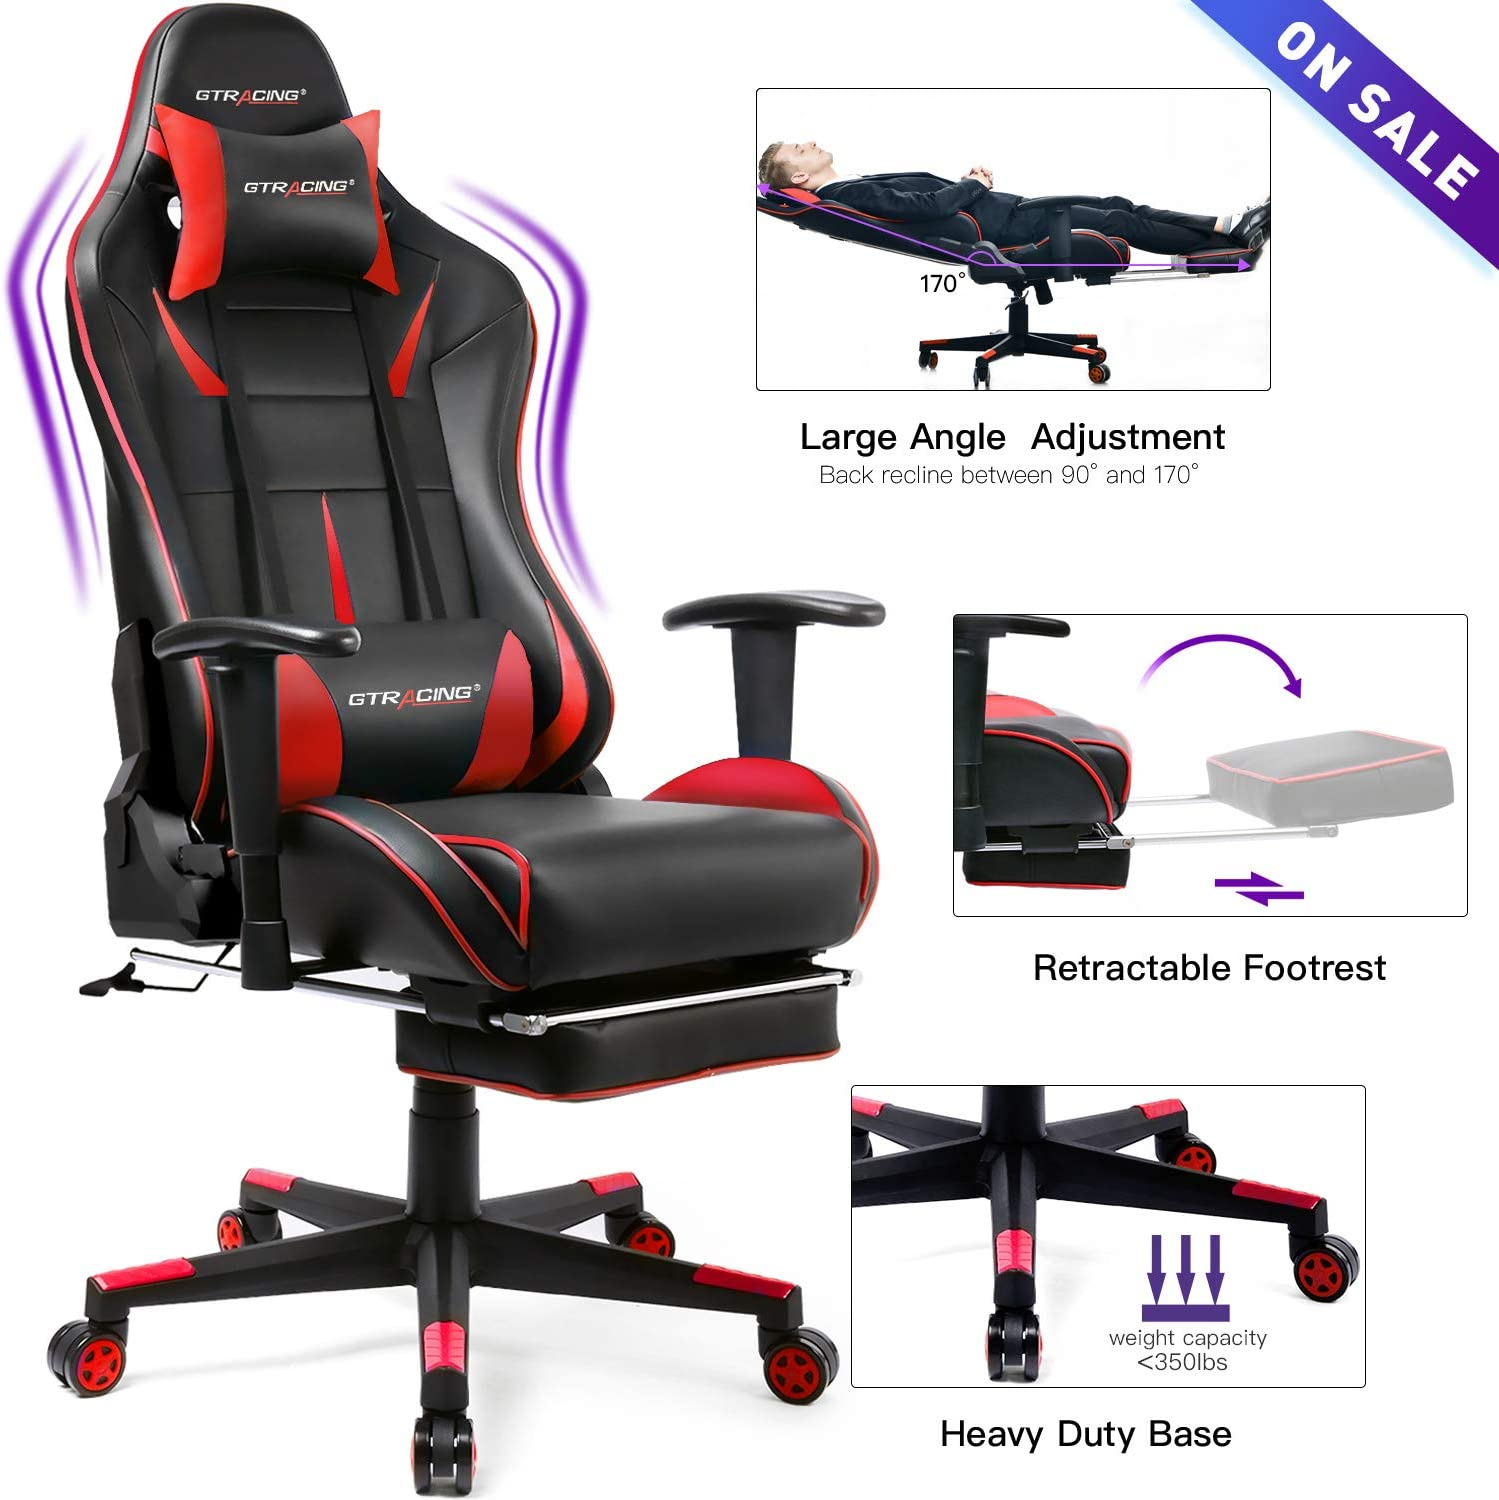 GTRACING Gaming Chair with Footrest Racing Heavy Duty Big & Tall Adjustable Recliner with Headrest Lumbar Support Pillow High Back Ergonomic Computer Desk Executive Office Chair GT909 Red